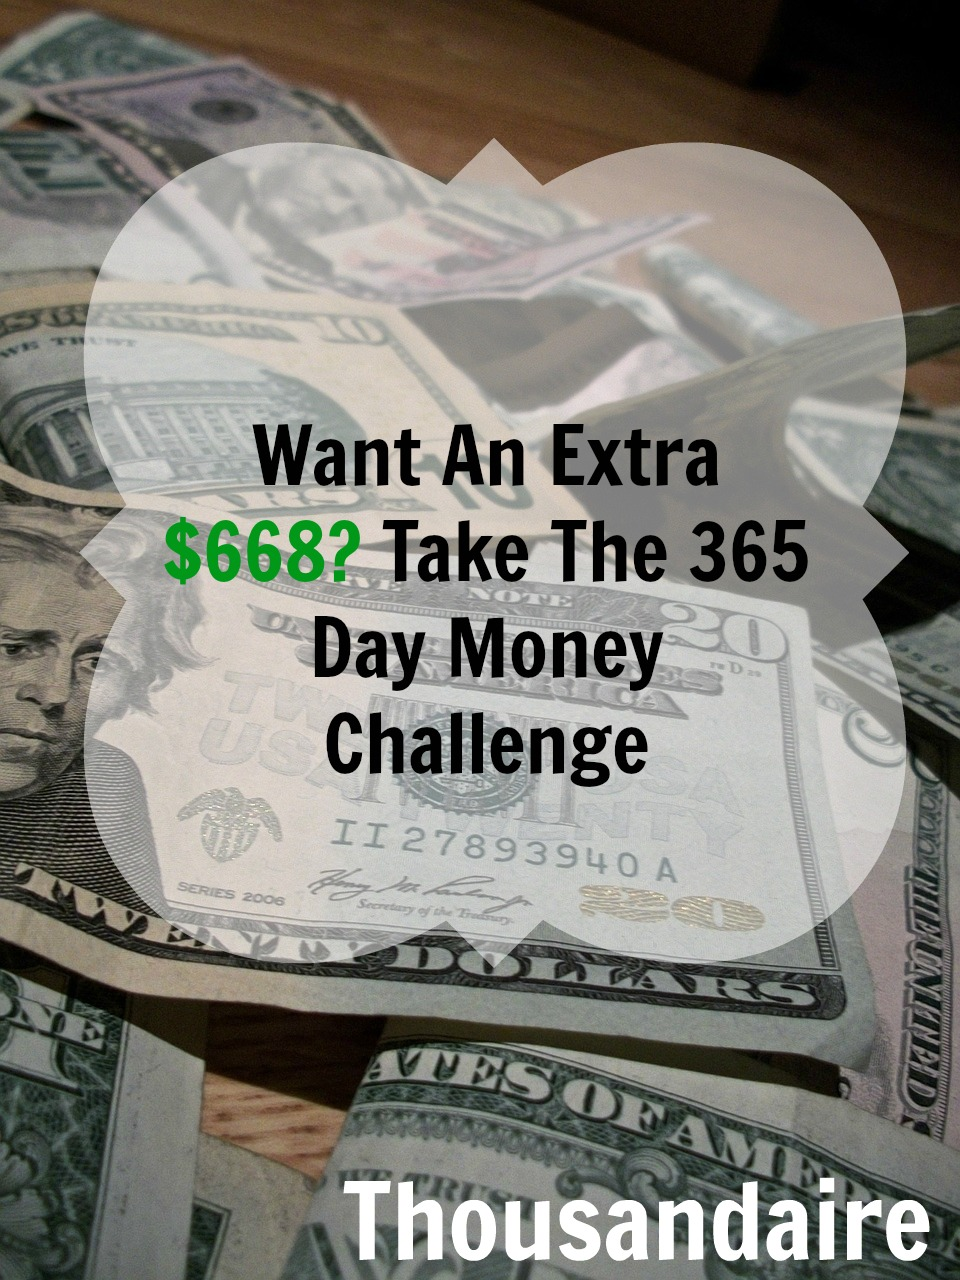 Want An Extra $668- Take The 365 Day Money Challen